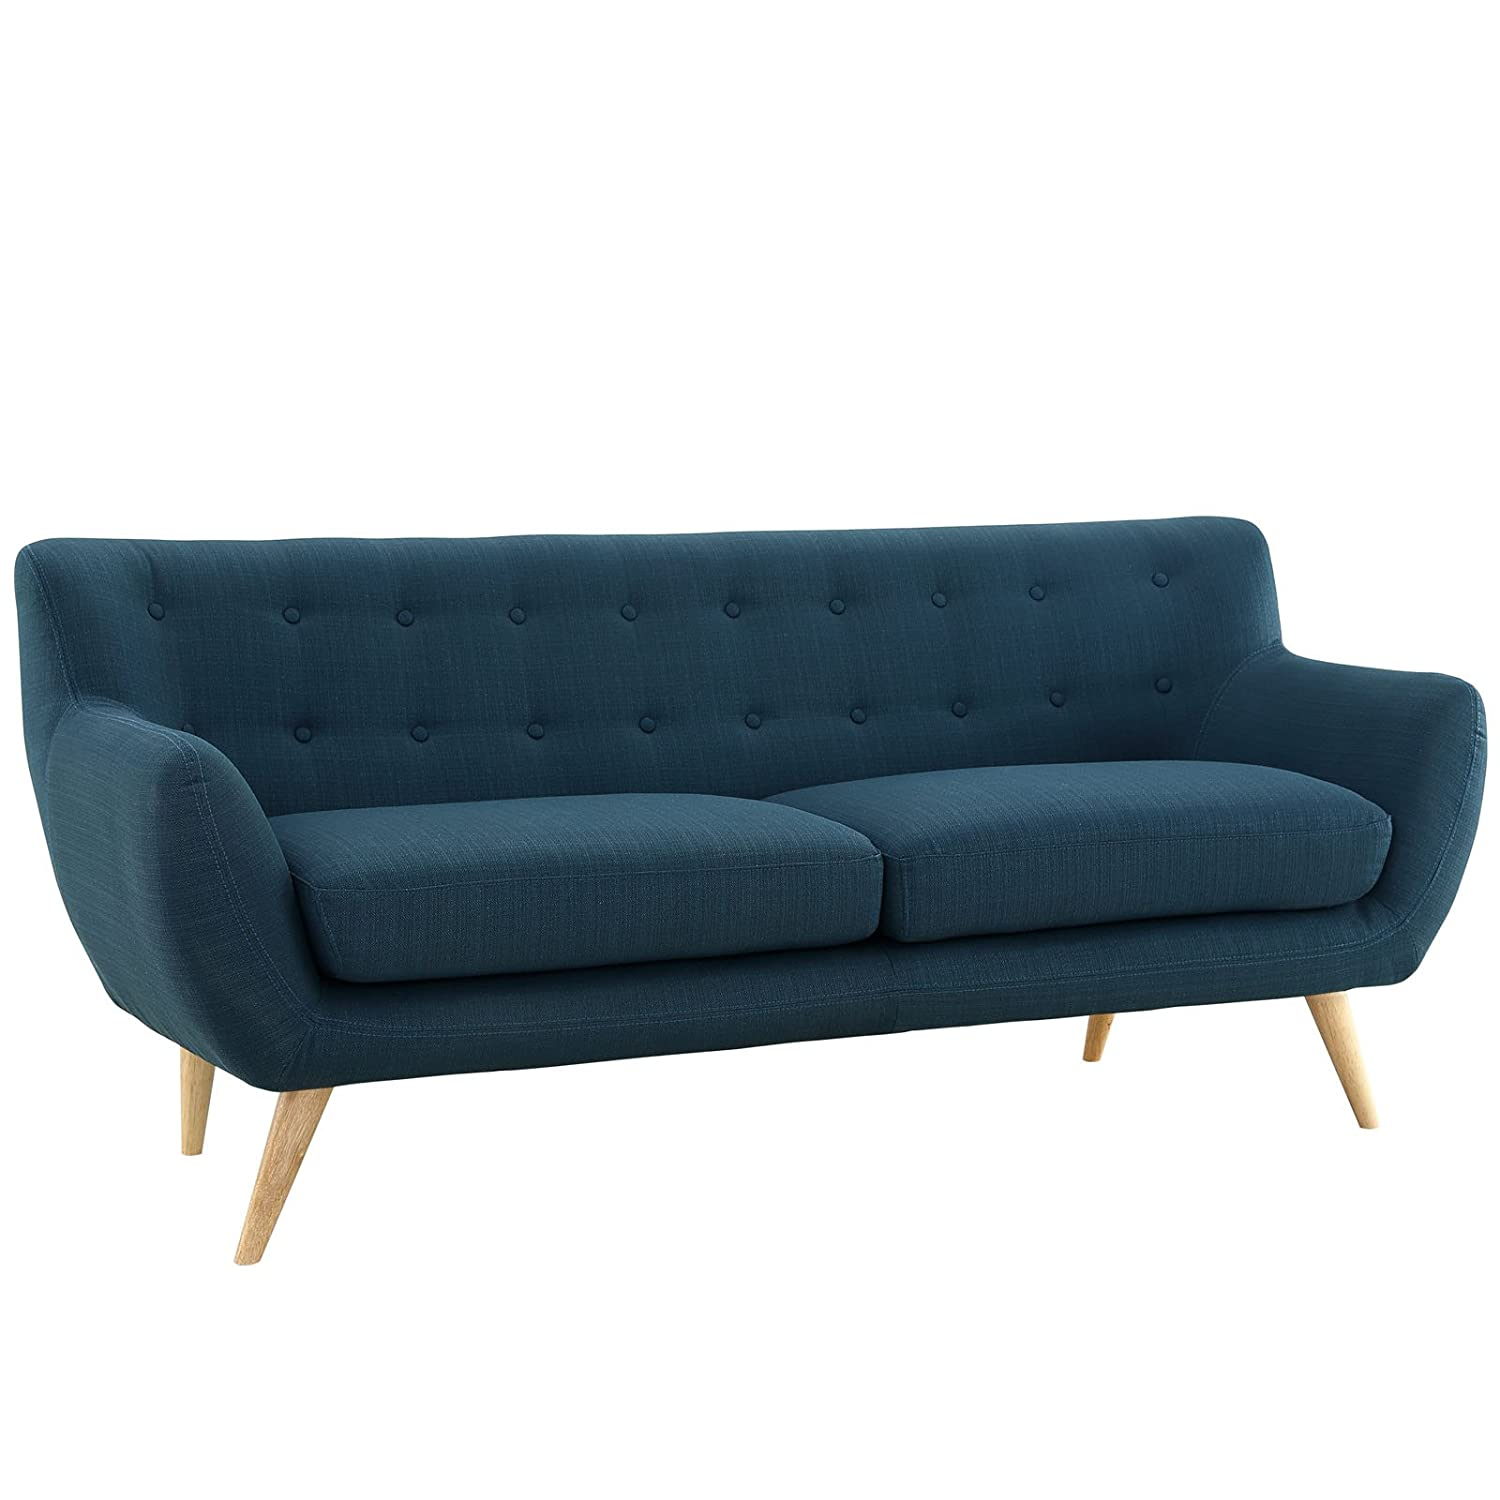 Amazon.com: Modway Remark Mid-Century Modern Sofa With Upholstered ...